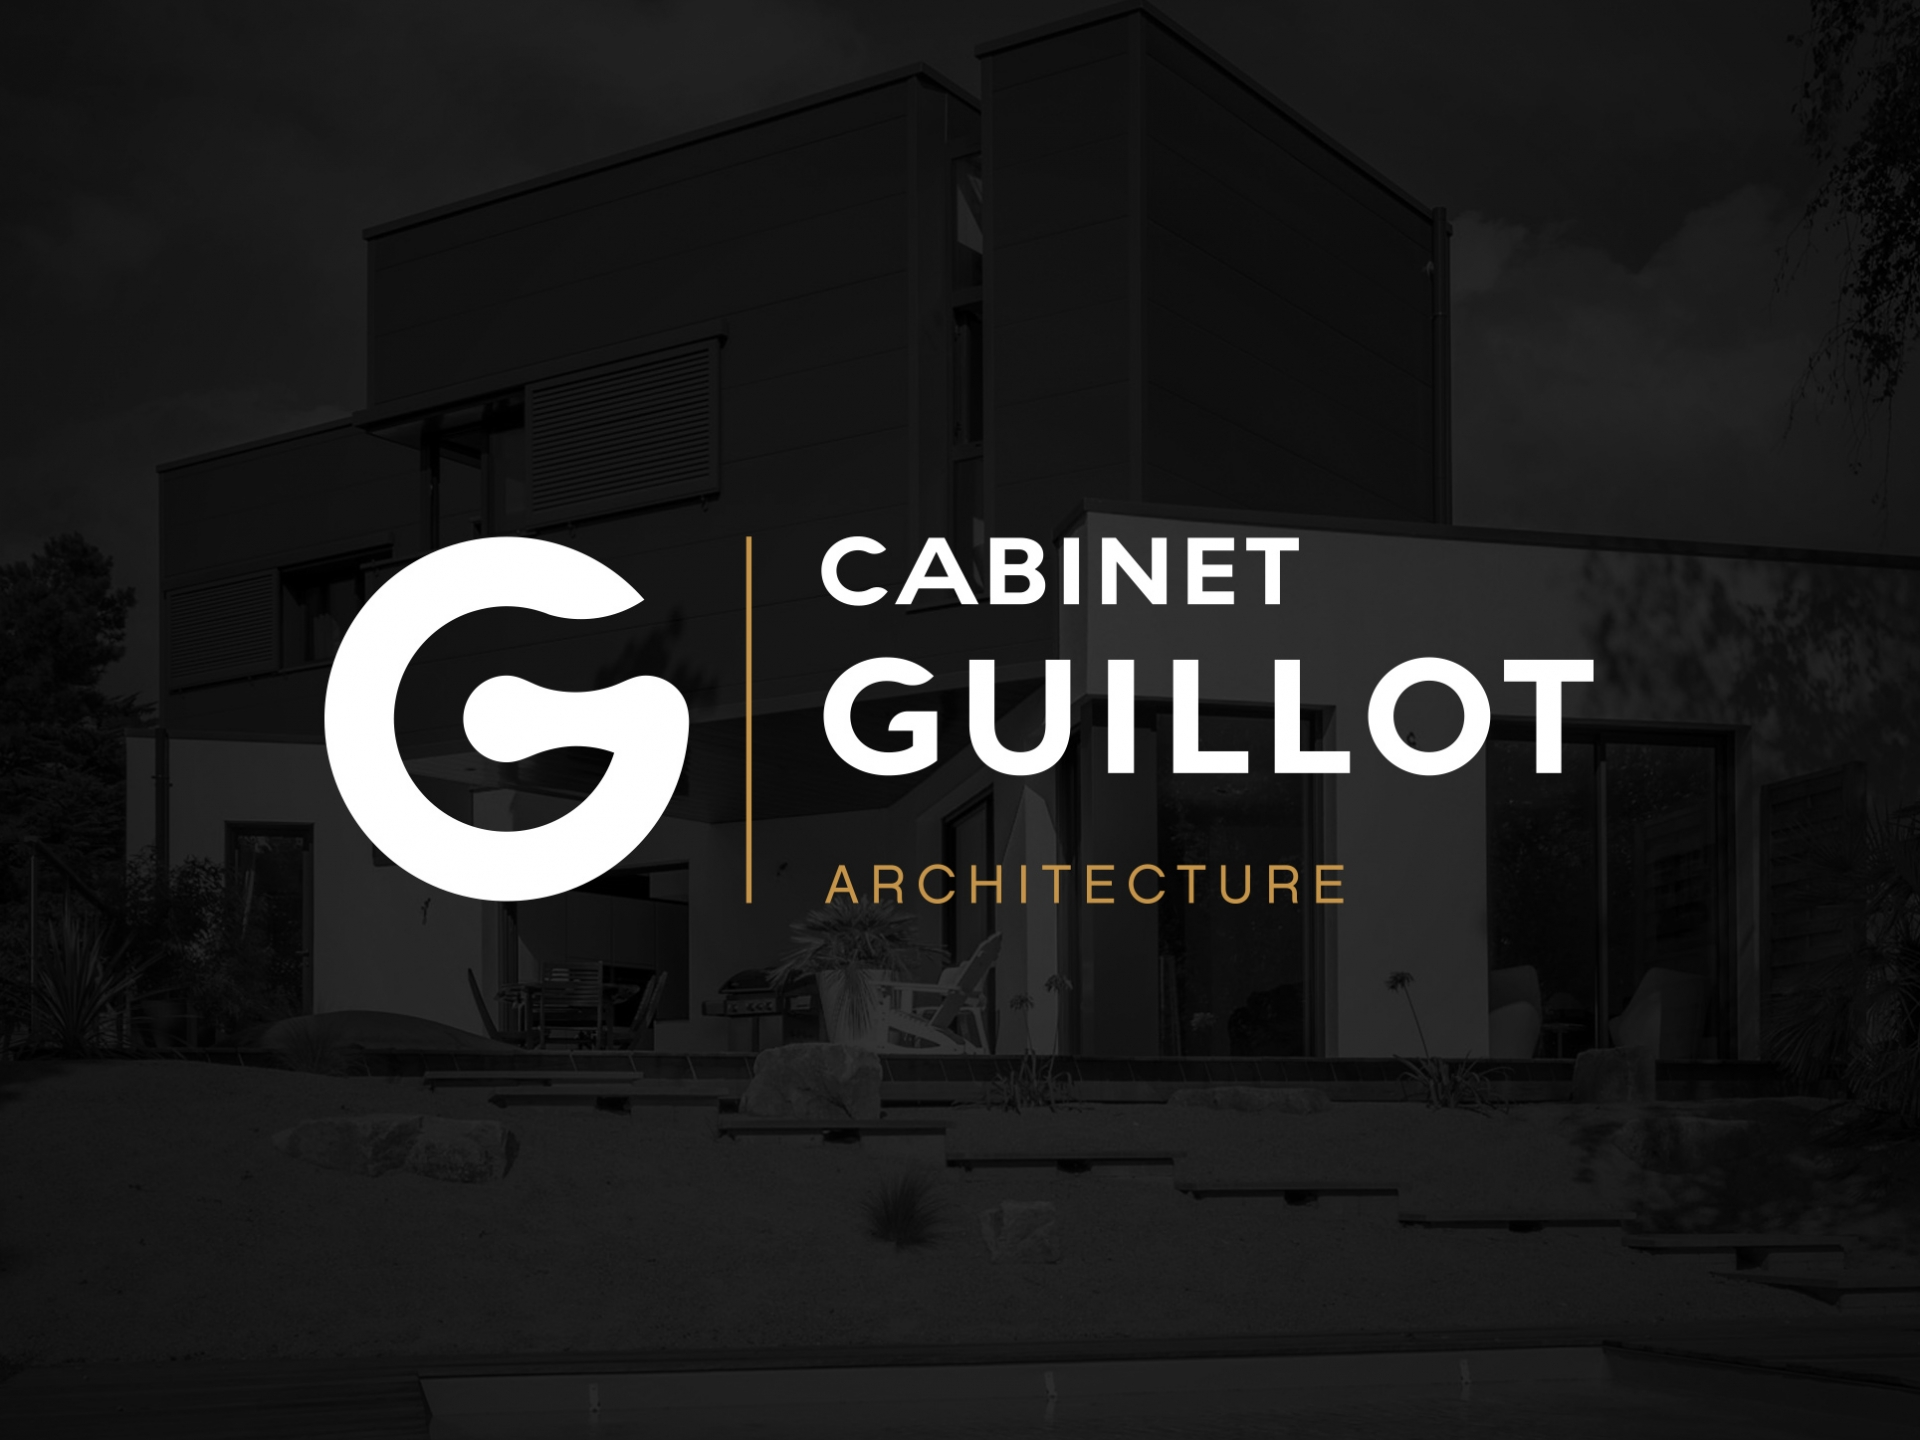 Cabinet Guillot